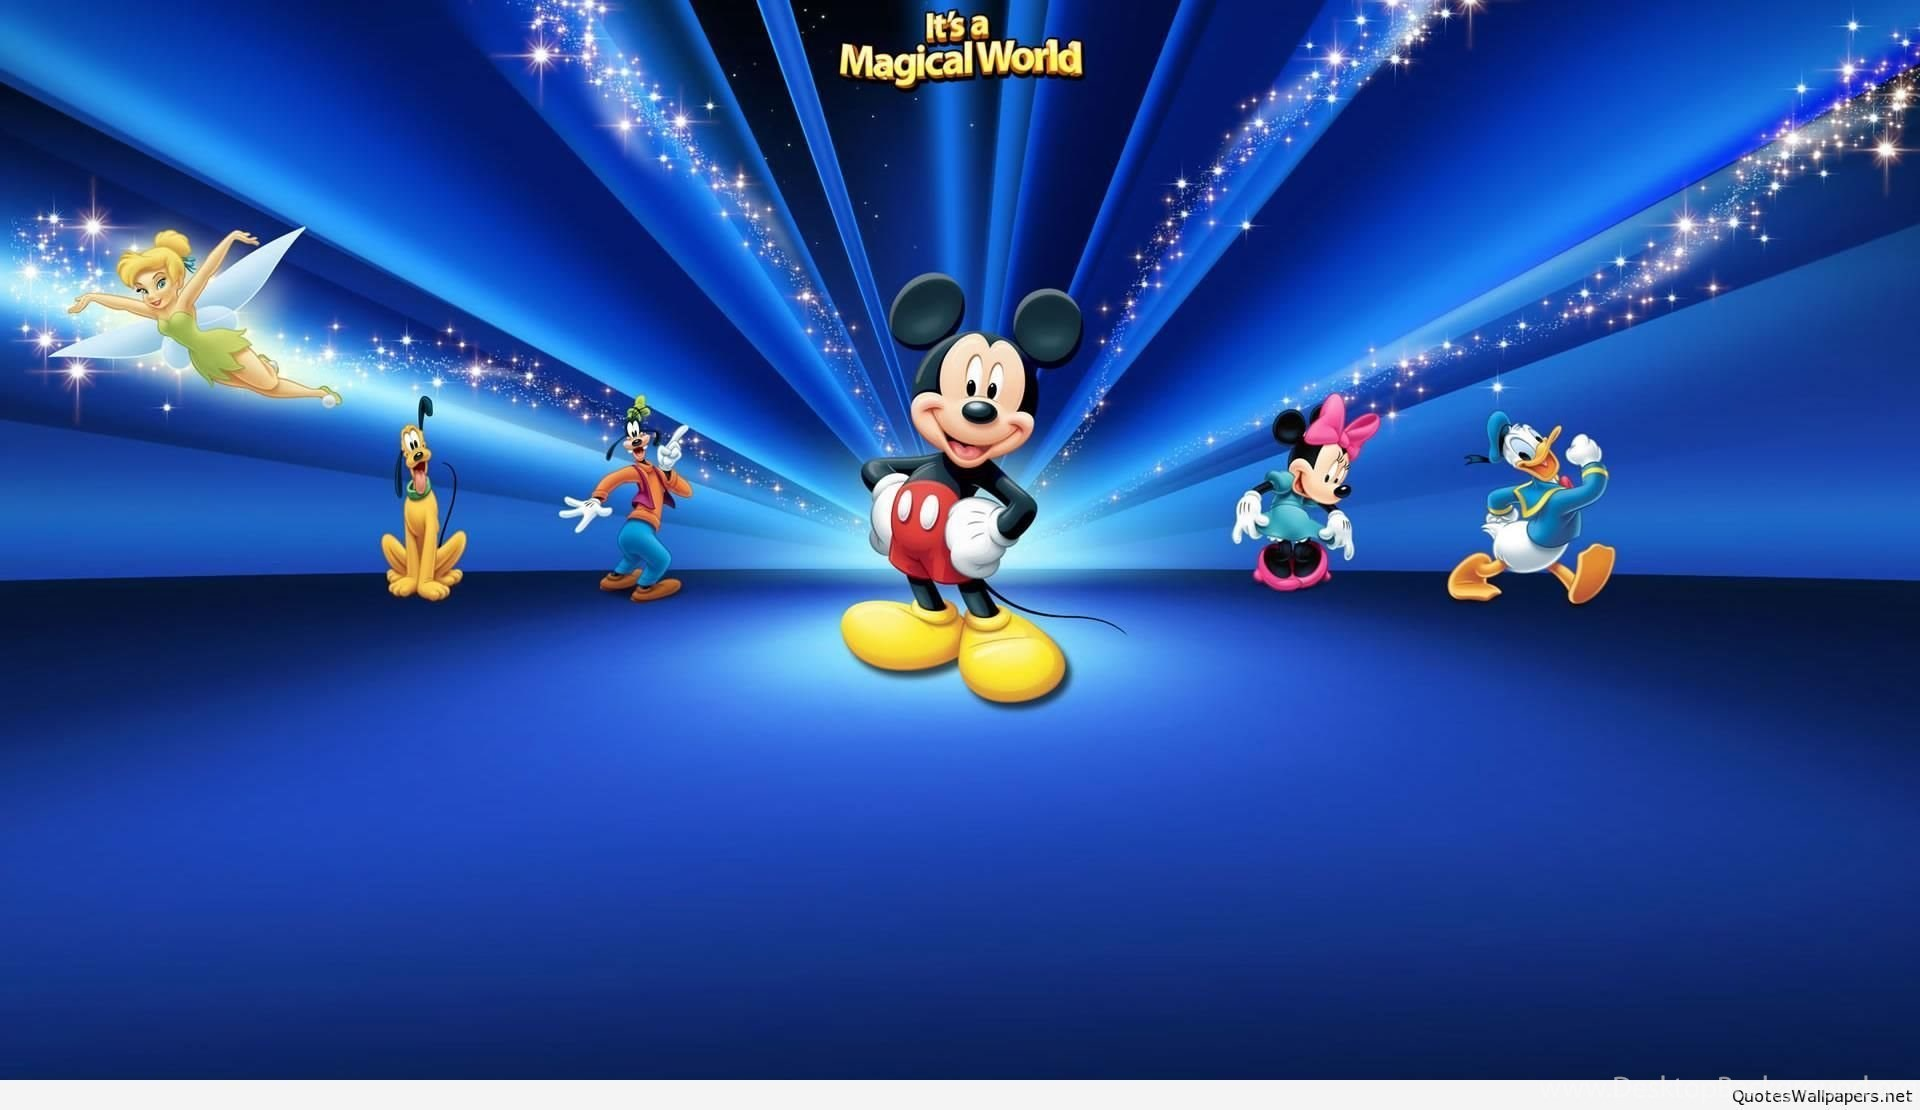 3d Live Wallpapers Free Download For Ipad: Hd Cartoon Wallpaper Cartoon Wallpaper Backgrounds Free